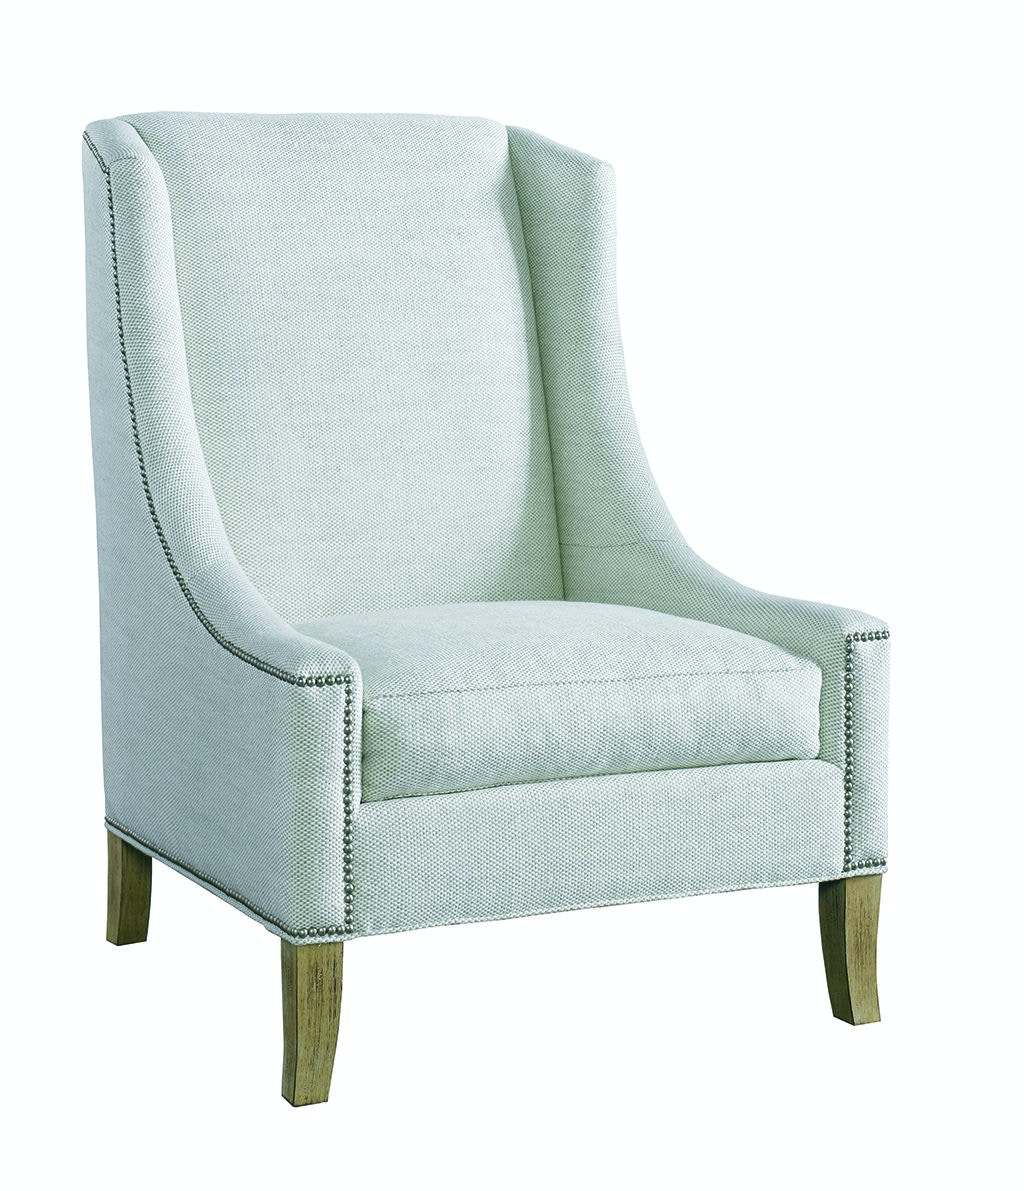 Lillian August For Hickory White Fenwick Chair LA4107C